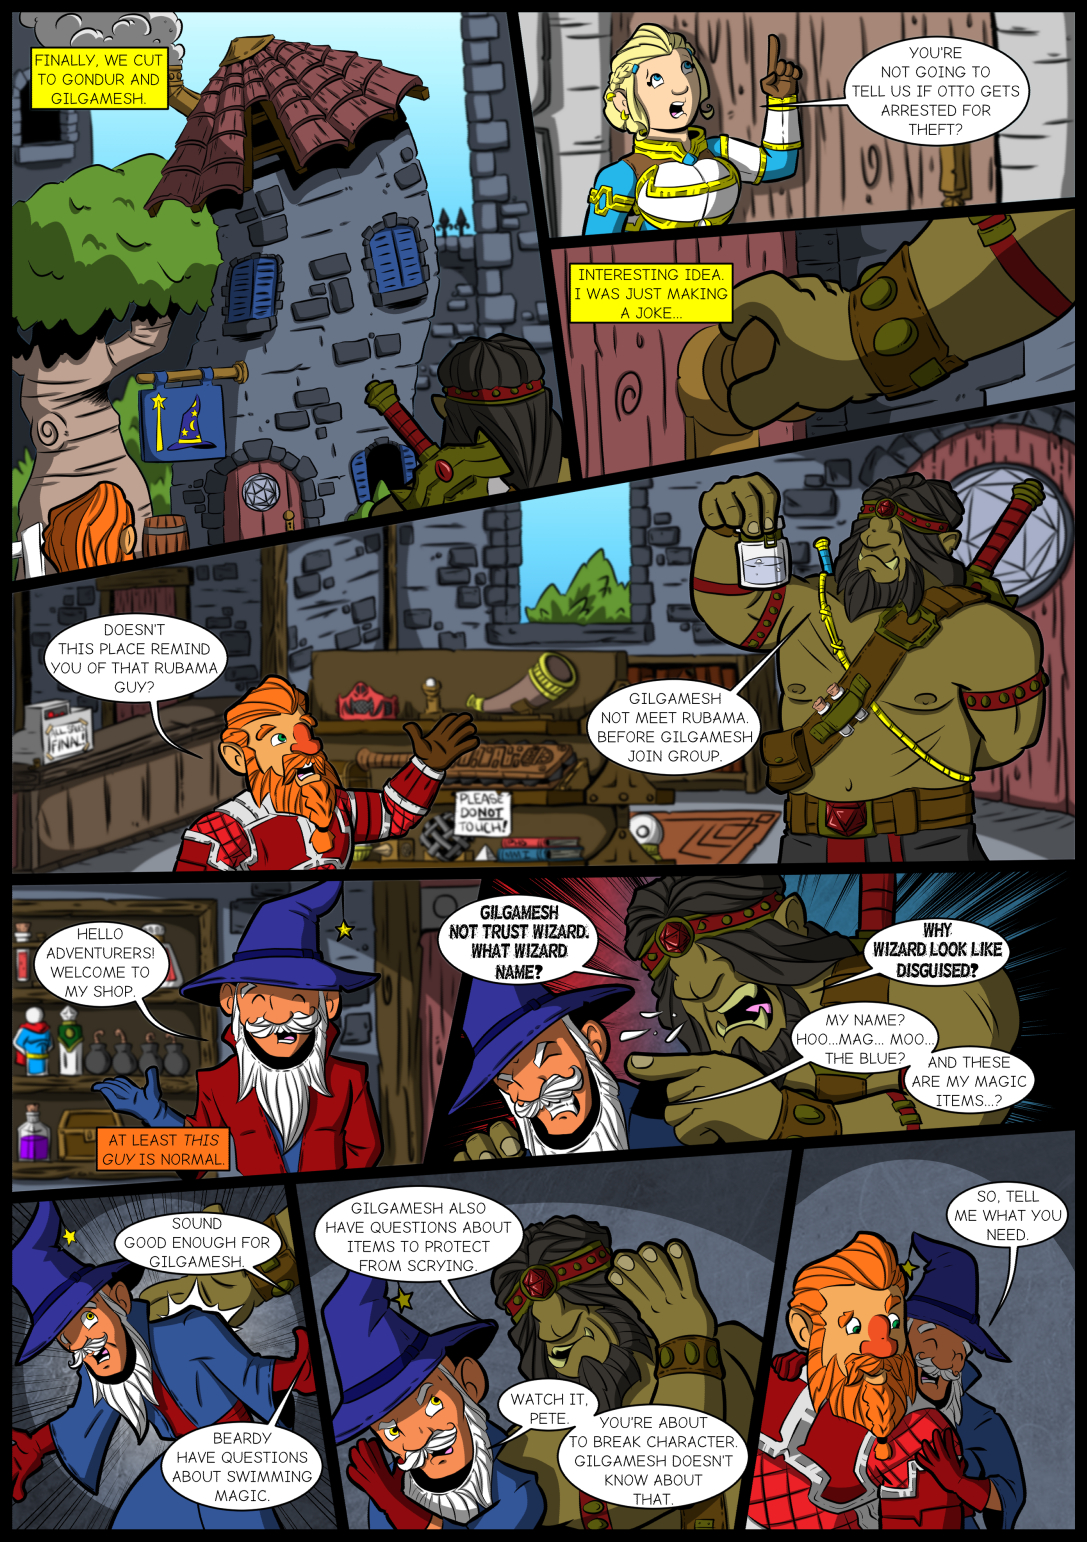 And I would have gotten away with it too if it wasn't for you pesky adventurers!